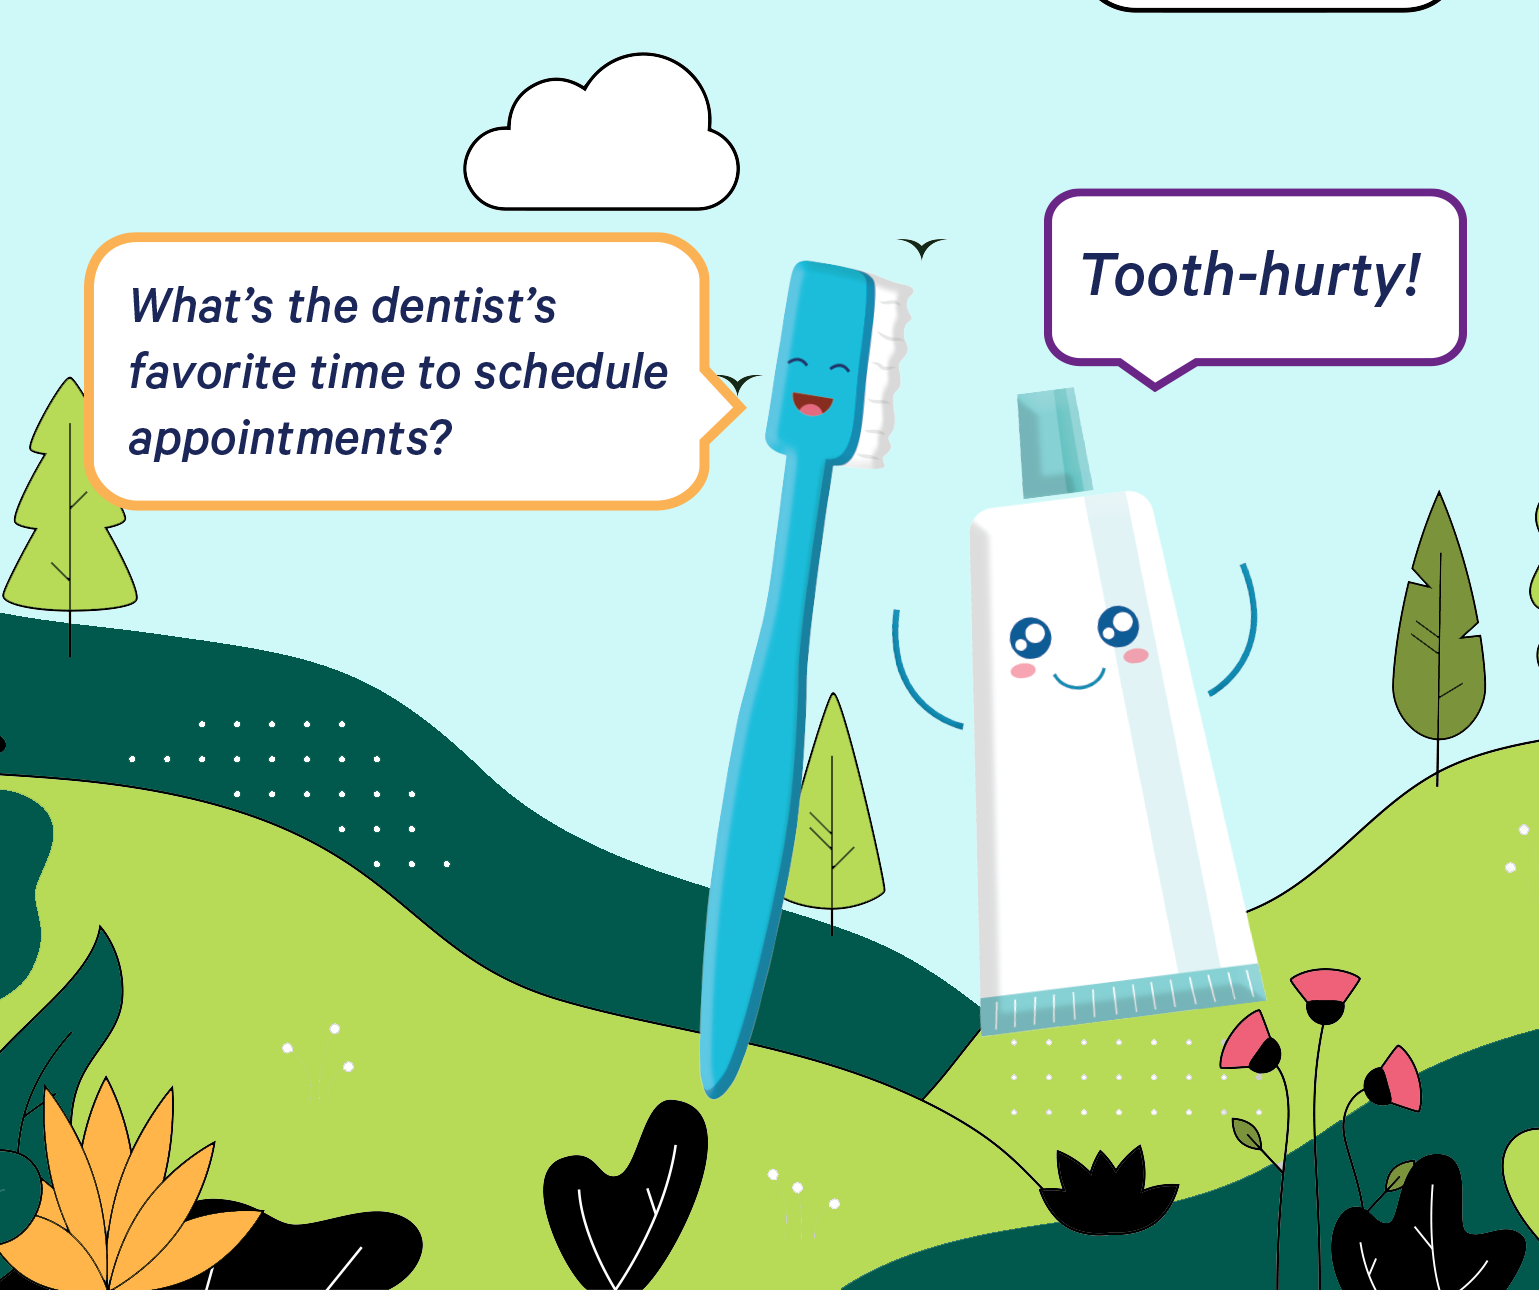 Toothbrush and toothpaste characters